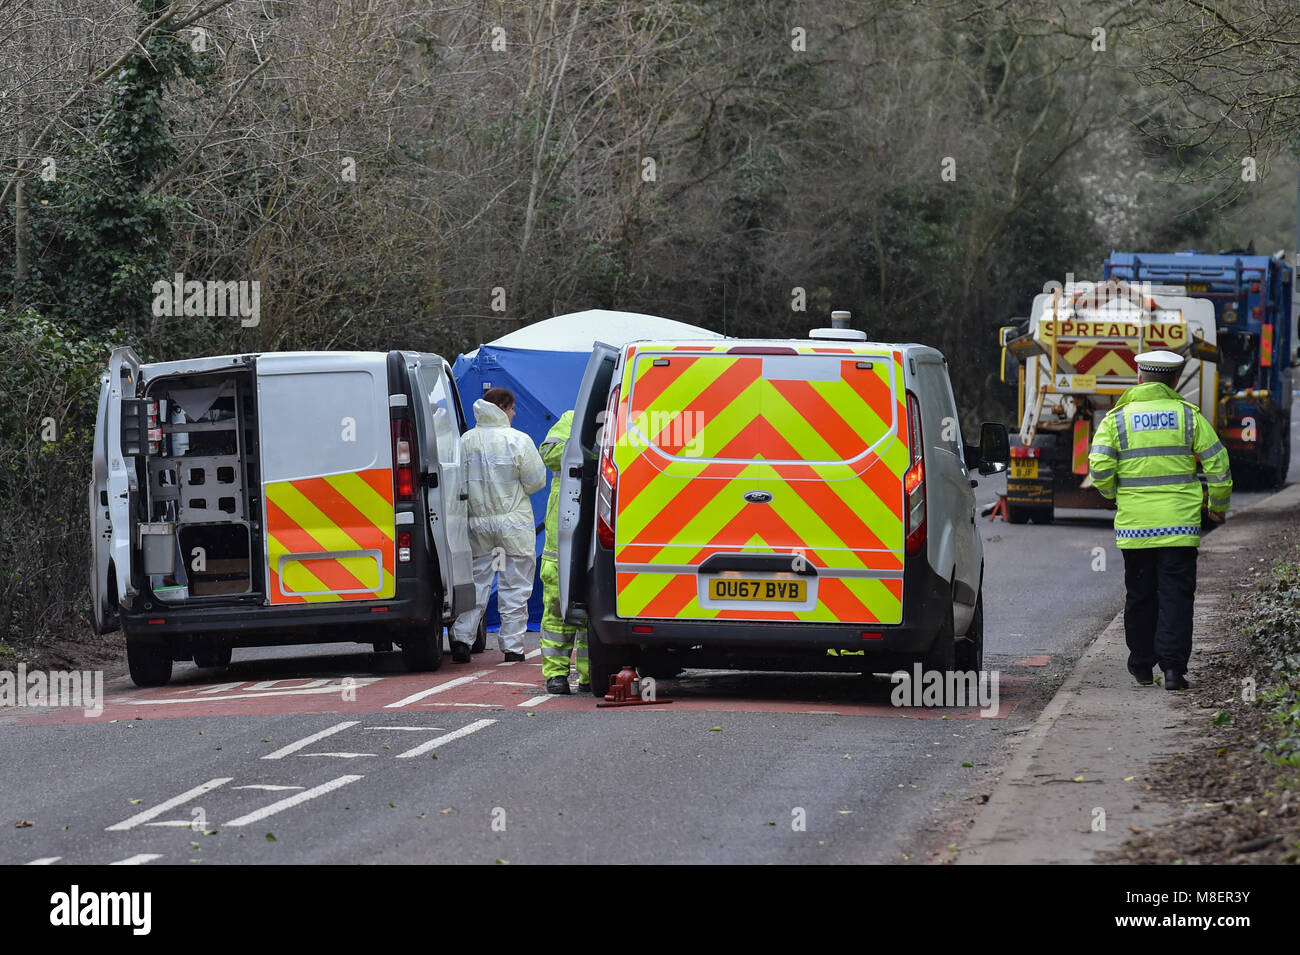 Henley, United Kingdom. 17 March 2018. Police officers were called to the A4155 at 5.29am today after reports of - Stock Image